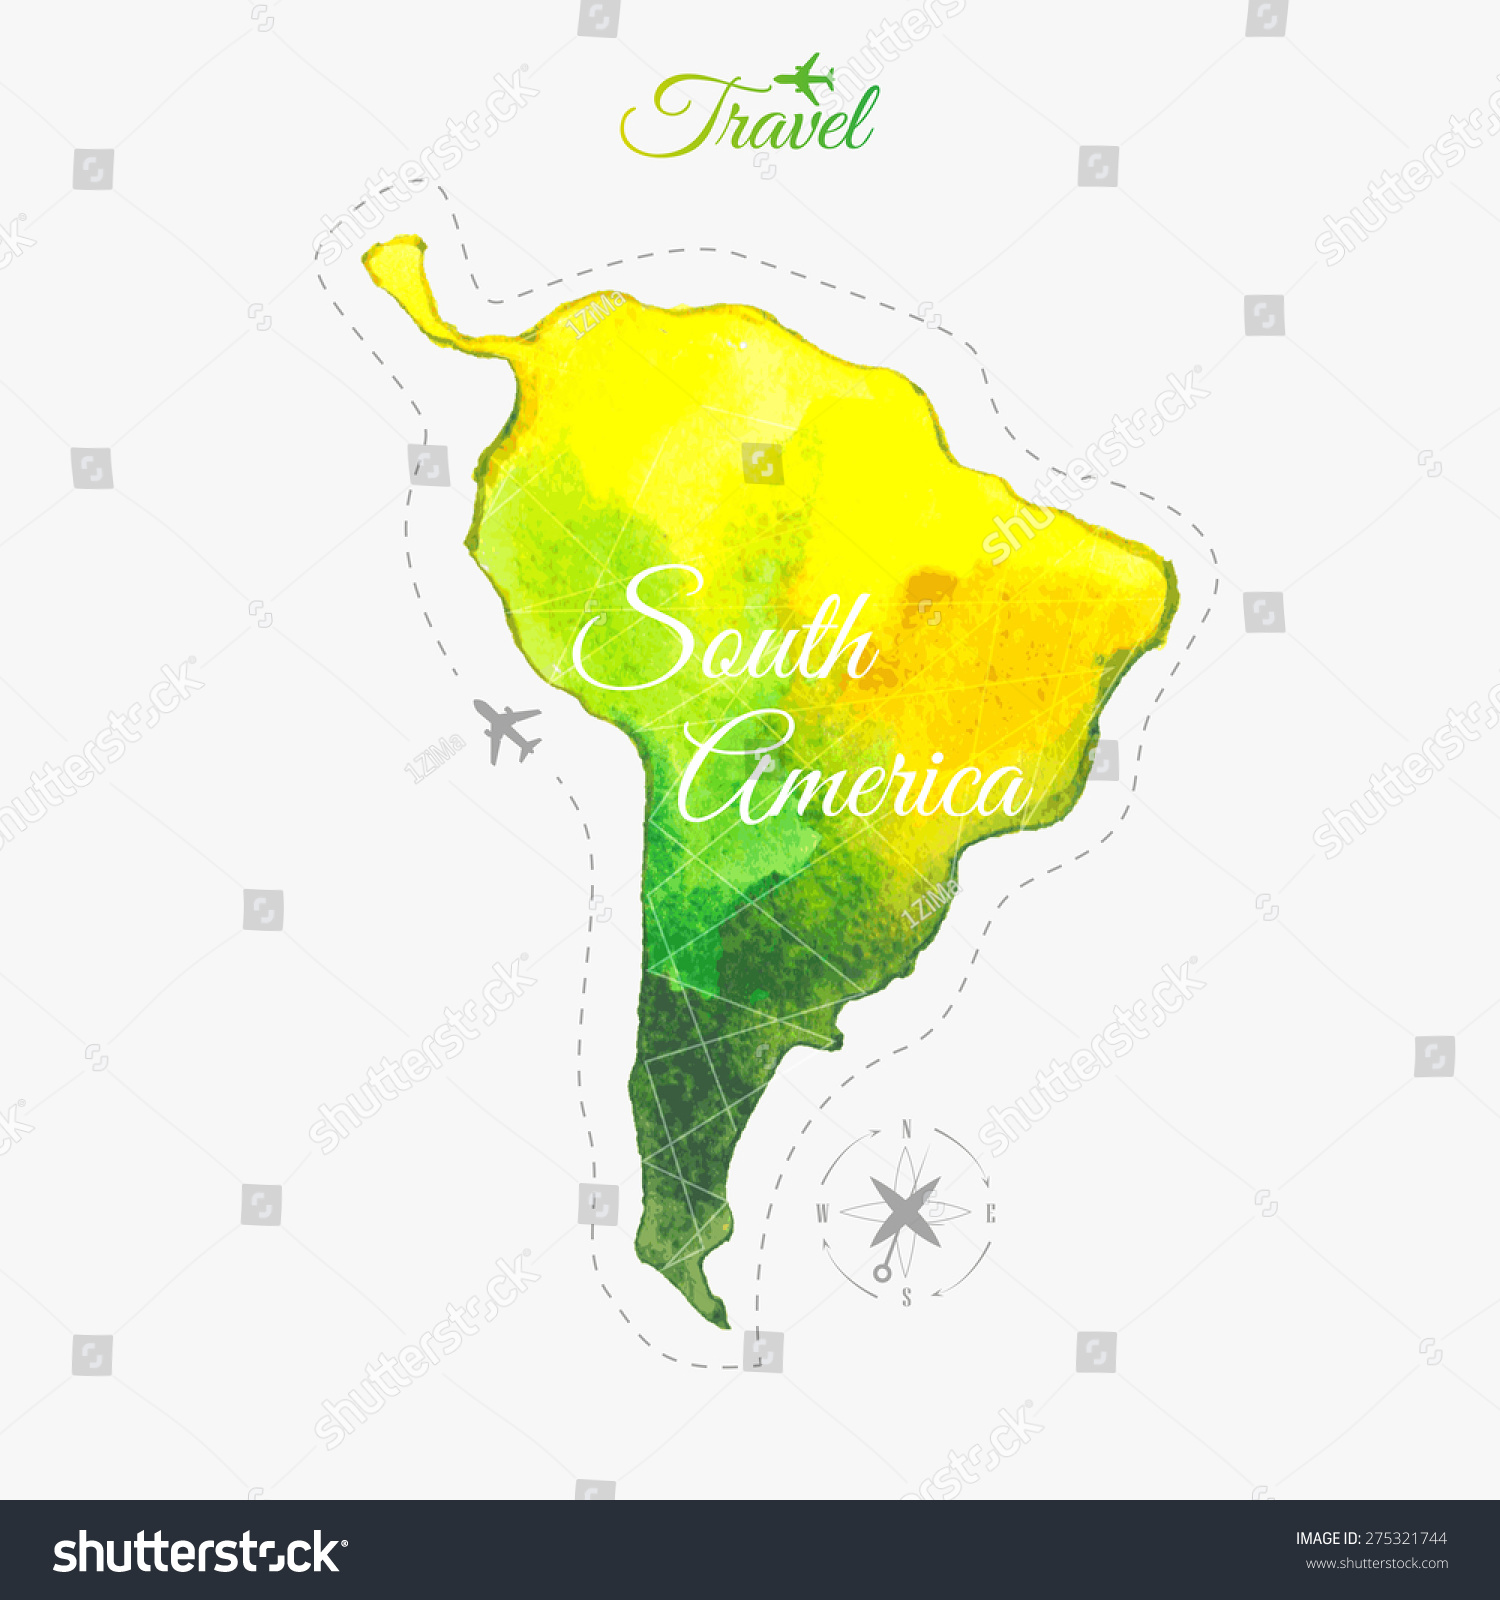 Travel Around The World South America Watercolor Map Stock - United states watercolor map